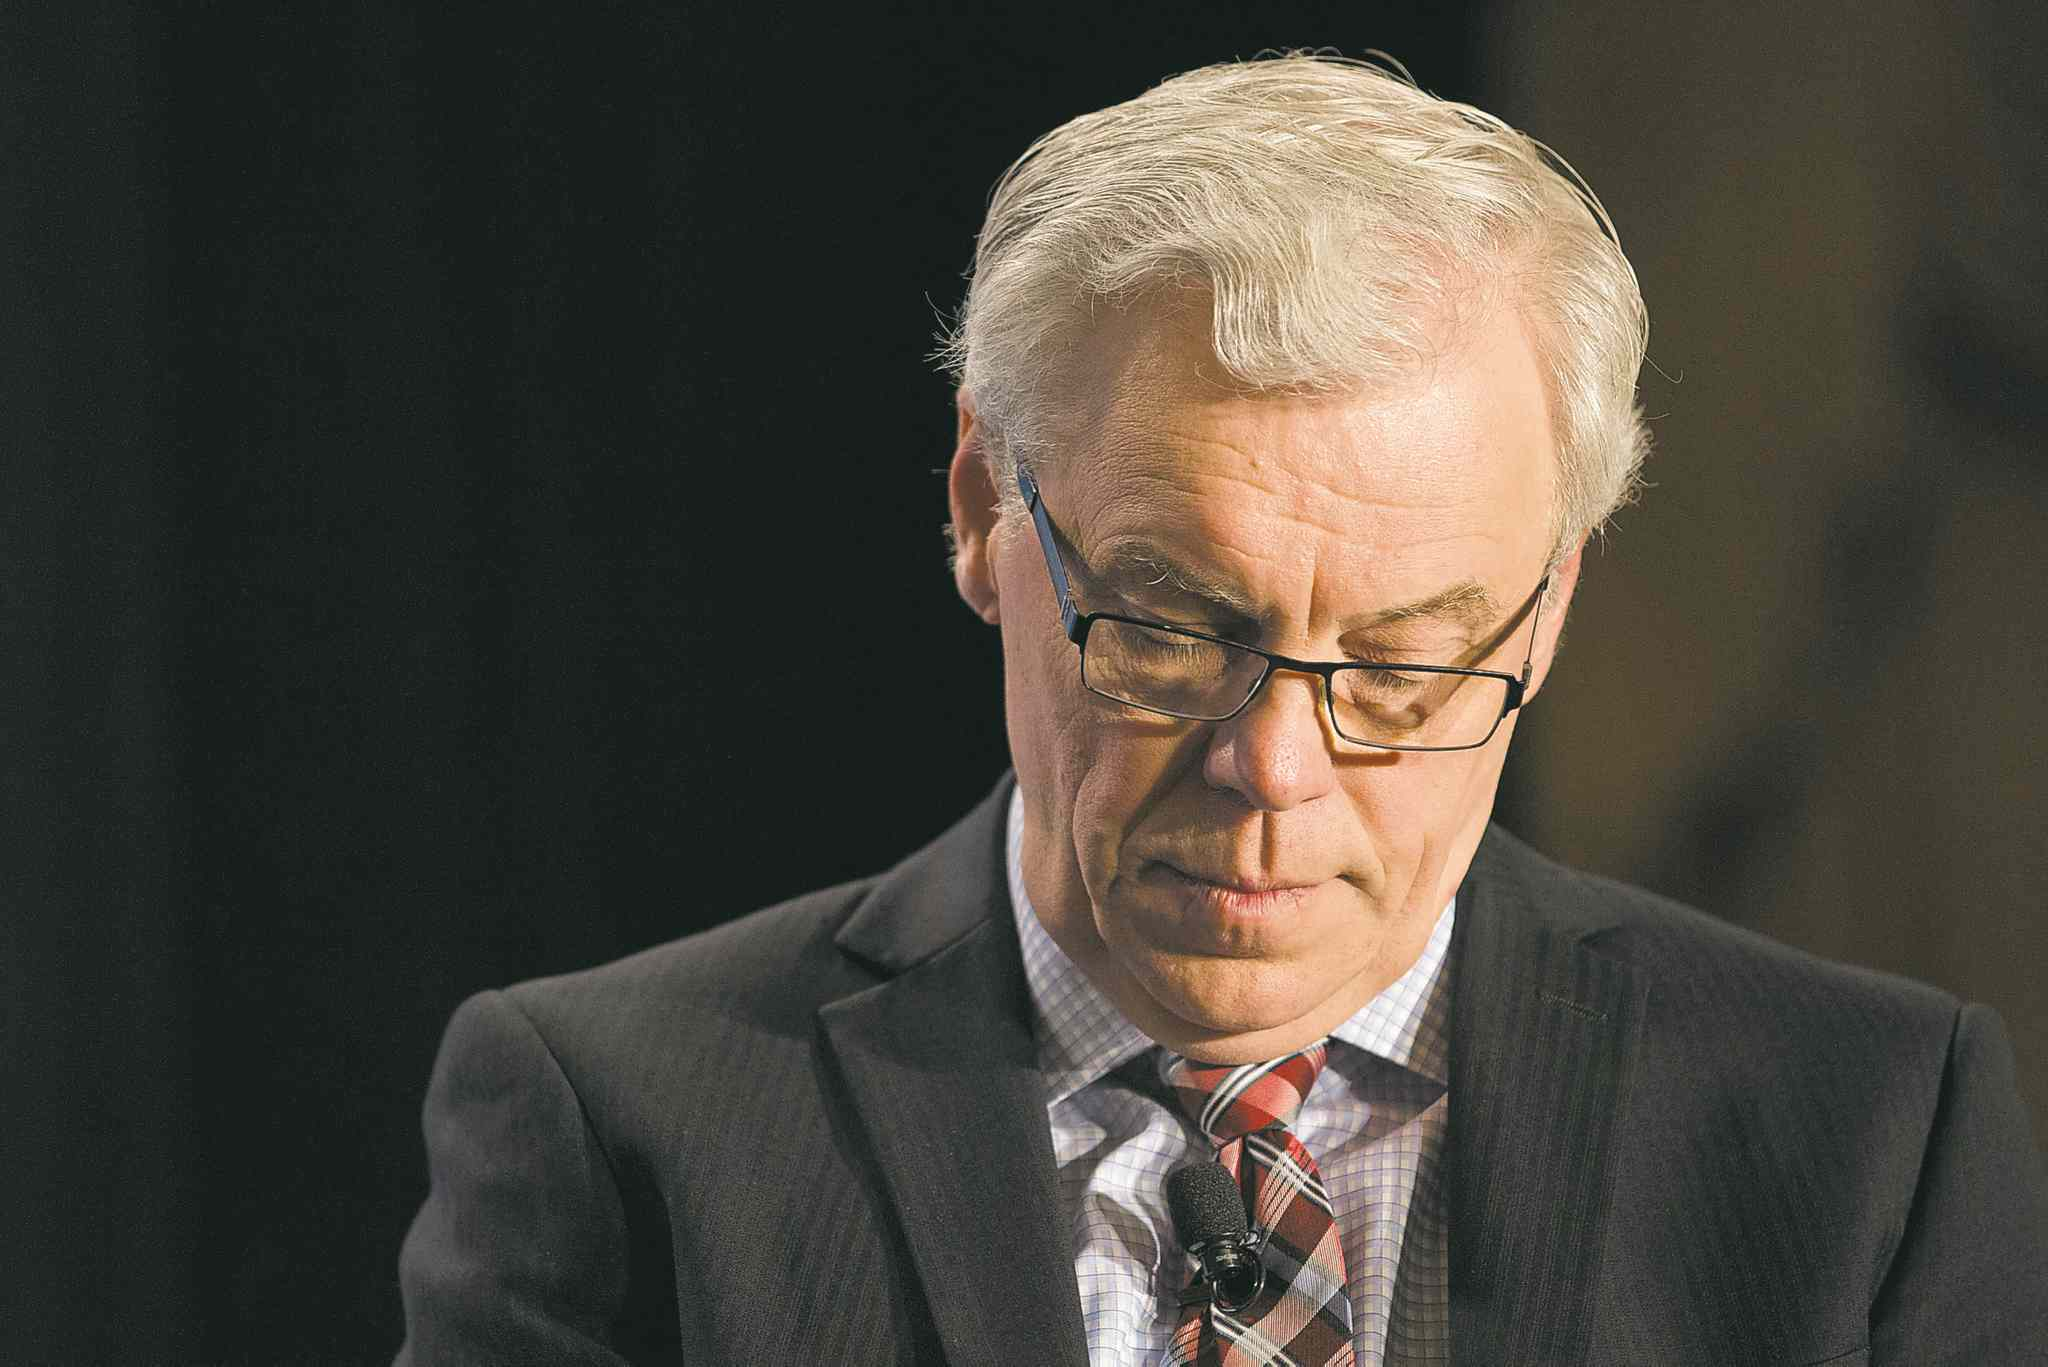 Manitoba's plan to get the budget in the black under Premier Greg Selinger was not received positively.